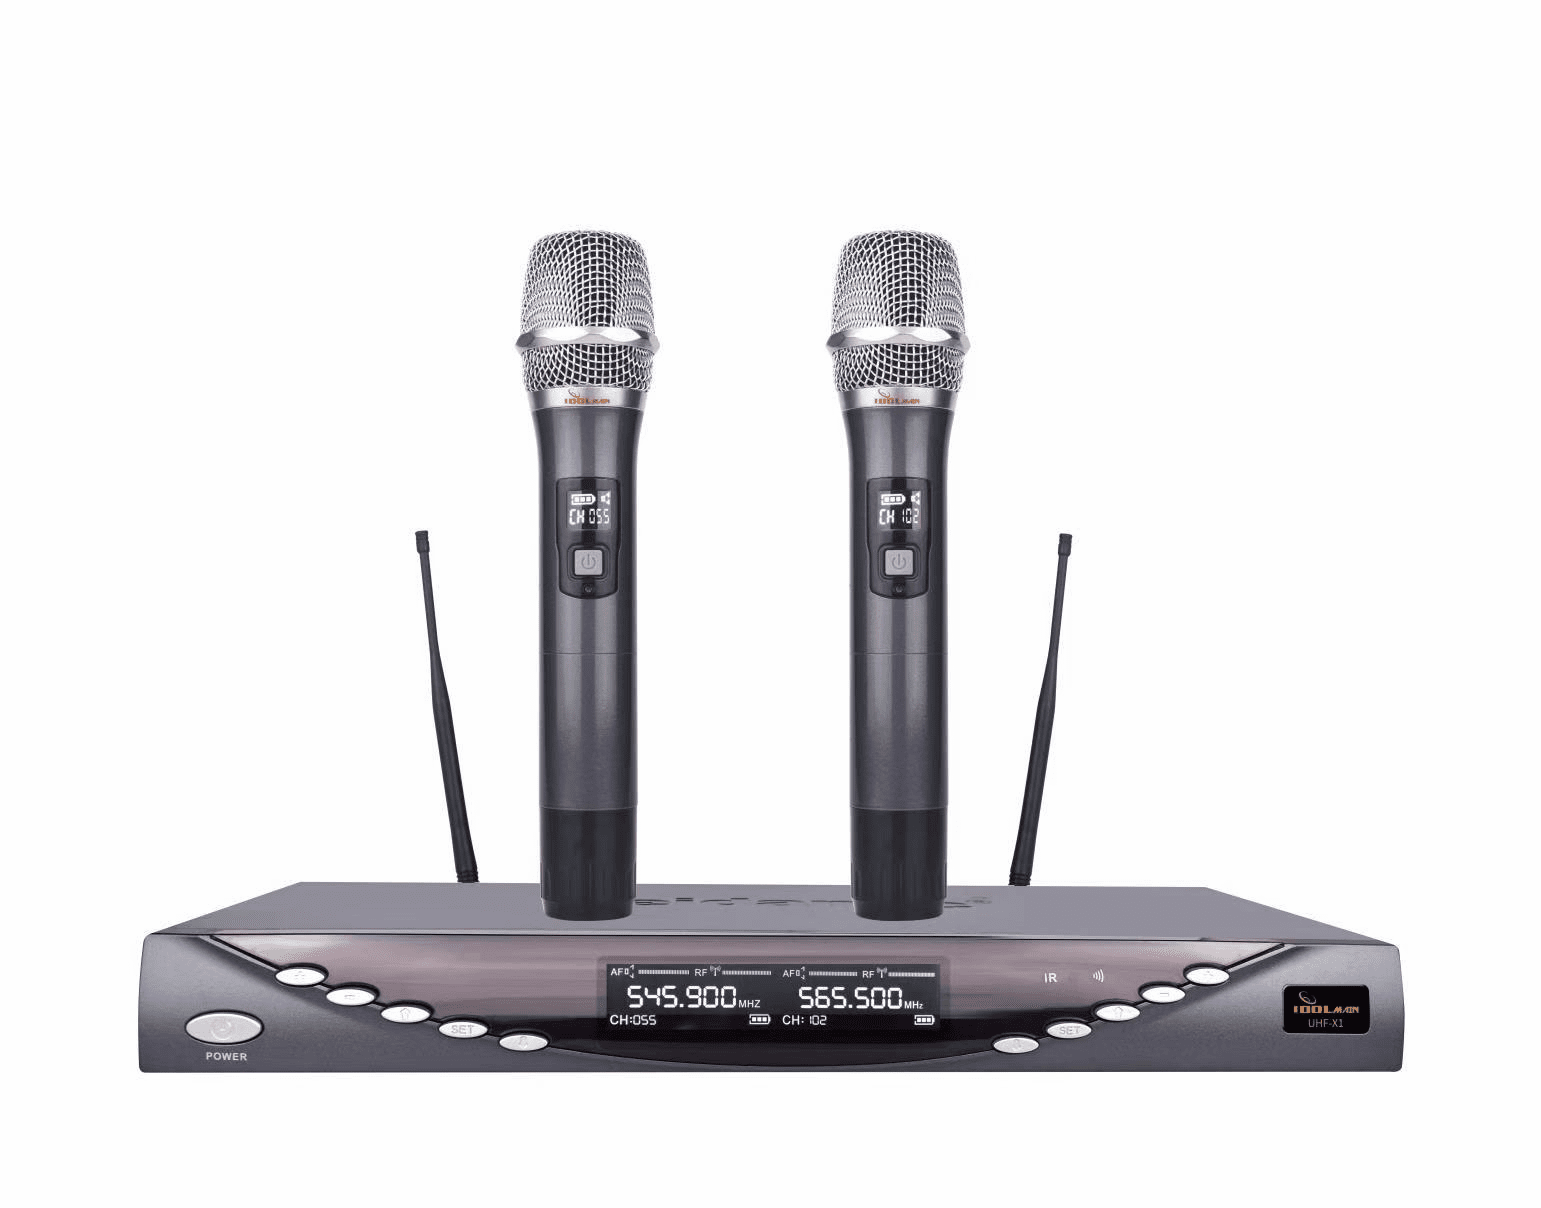 "IDOLmain UHF-X1 Professional Performance With Anti Feedback,Ultra Low Distortion, and No-Touch Frequency Scanning with Digital Pilot Technology Dual Wireless Microphone System  <font color="" orange""><b>NEW 2019 </b></font>"